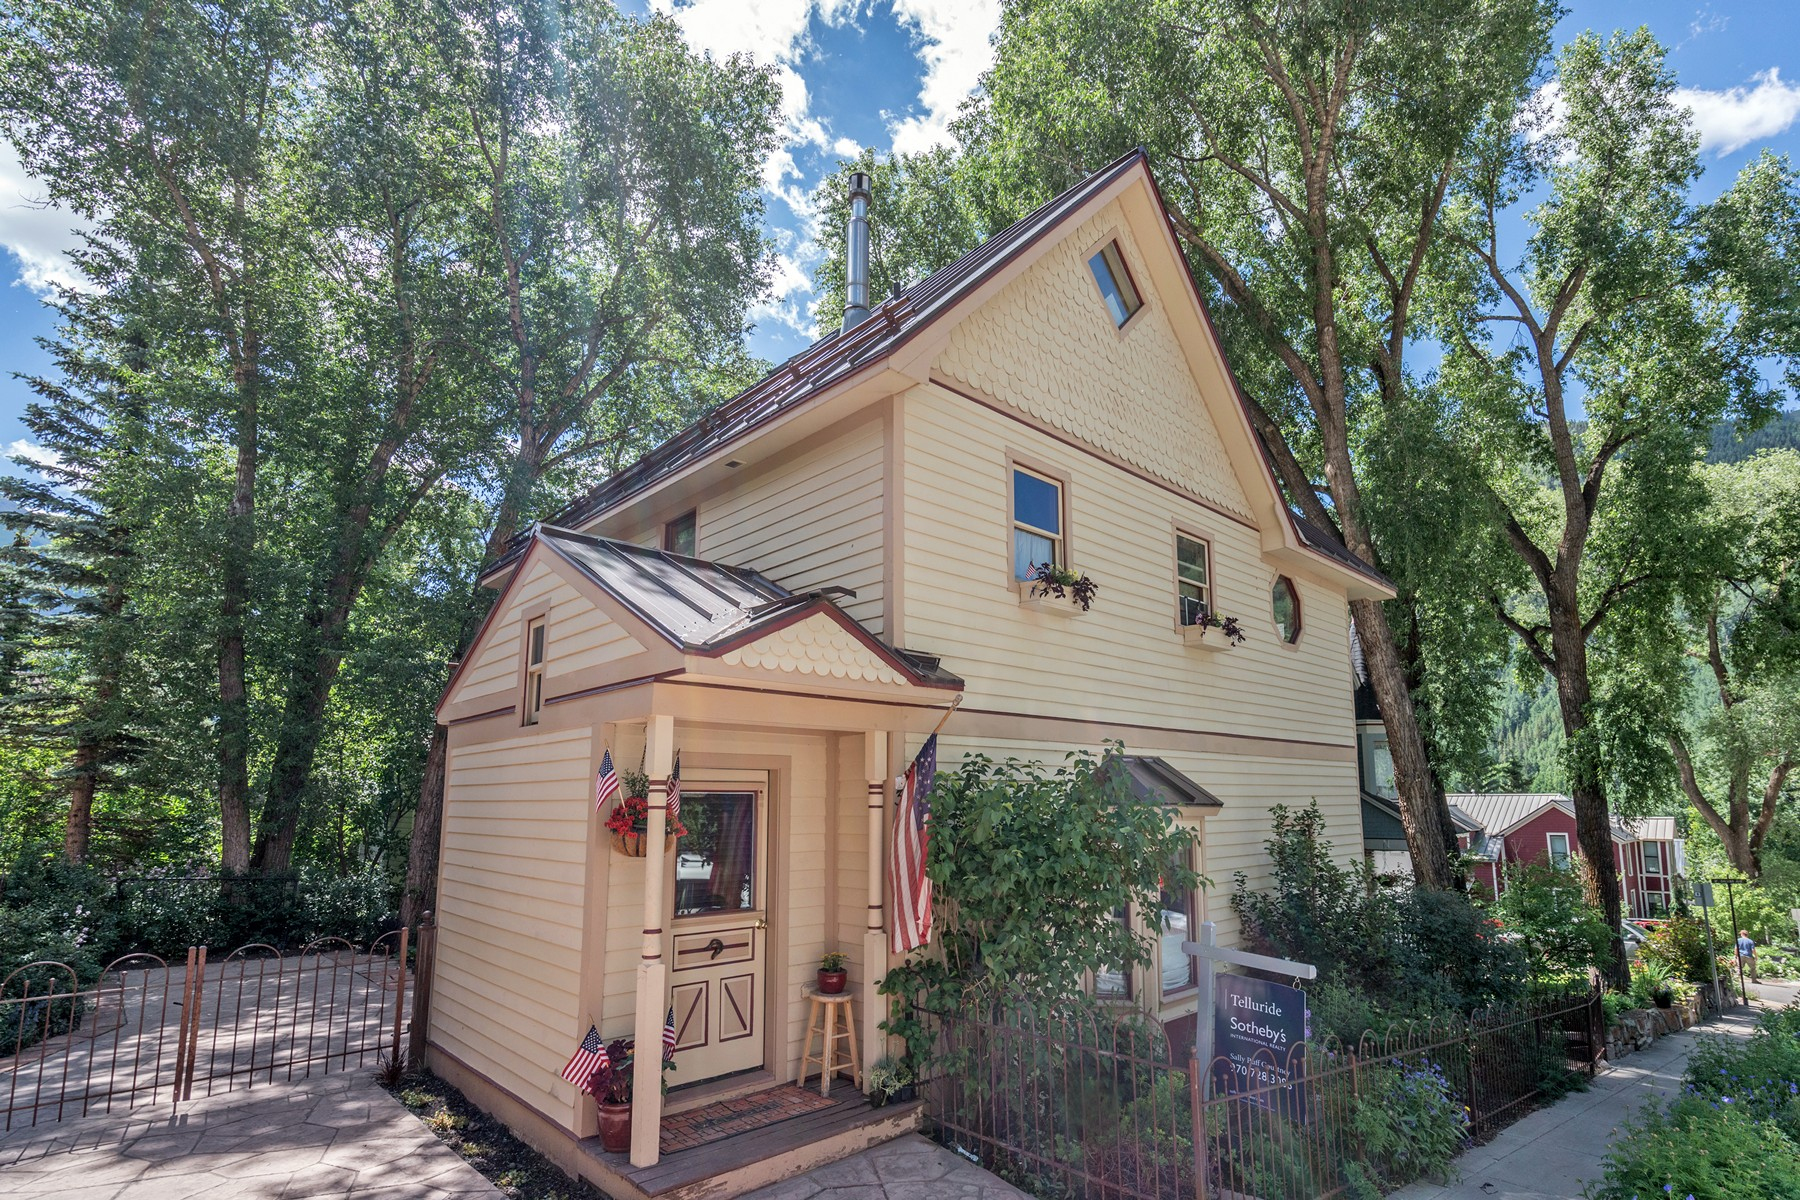 Single Family Home for Sale at 314 N. Oak Street Telluride, Colorado, 81435 United States